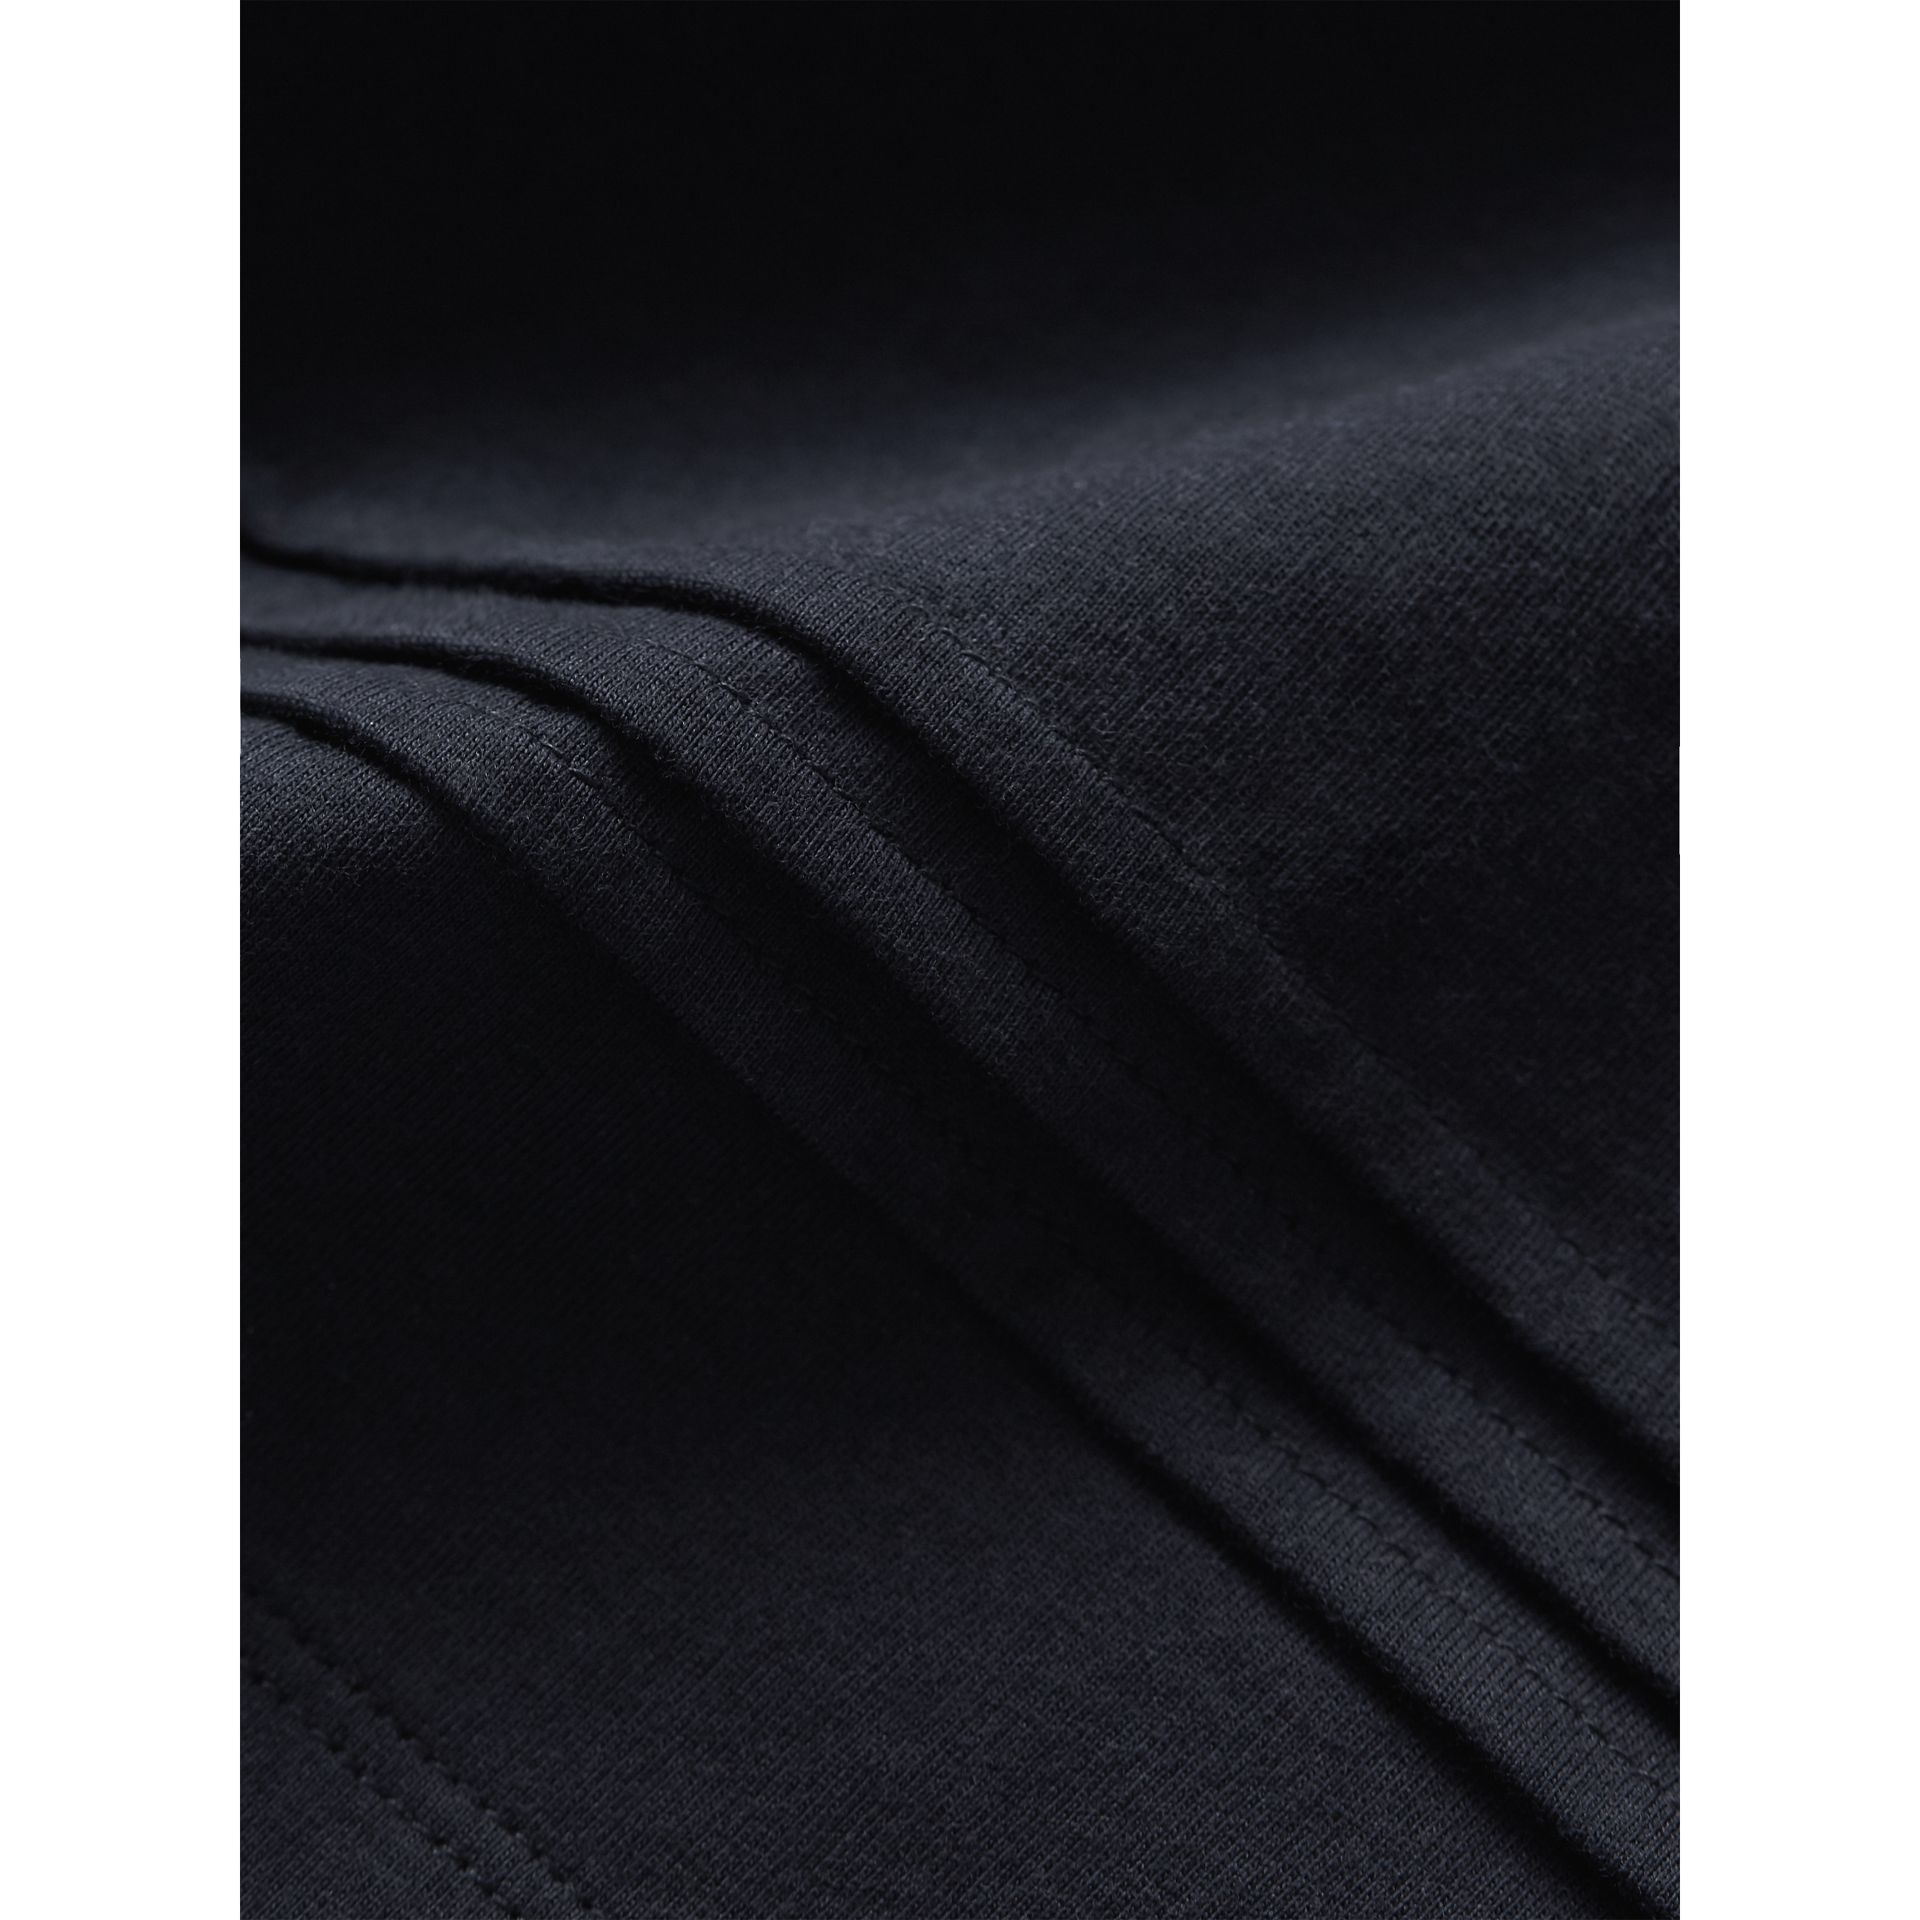 Long-sleeve Pleat and Check Detail Cotton T-shirt in Navy - Girl | Burberry Australia - gallery image 2